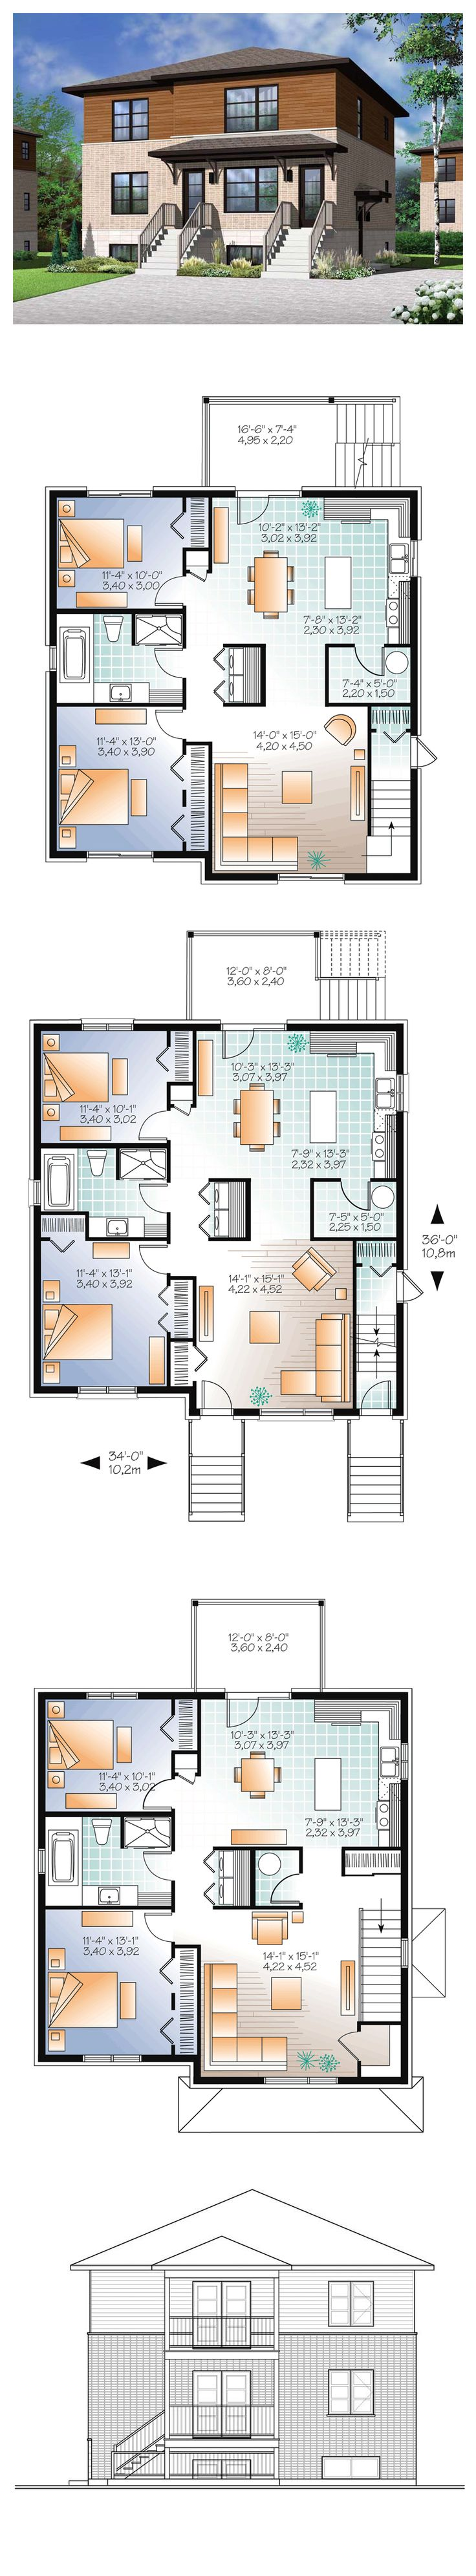 1000 images about duplex apartment plans on for Multi family condo plans